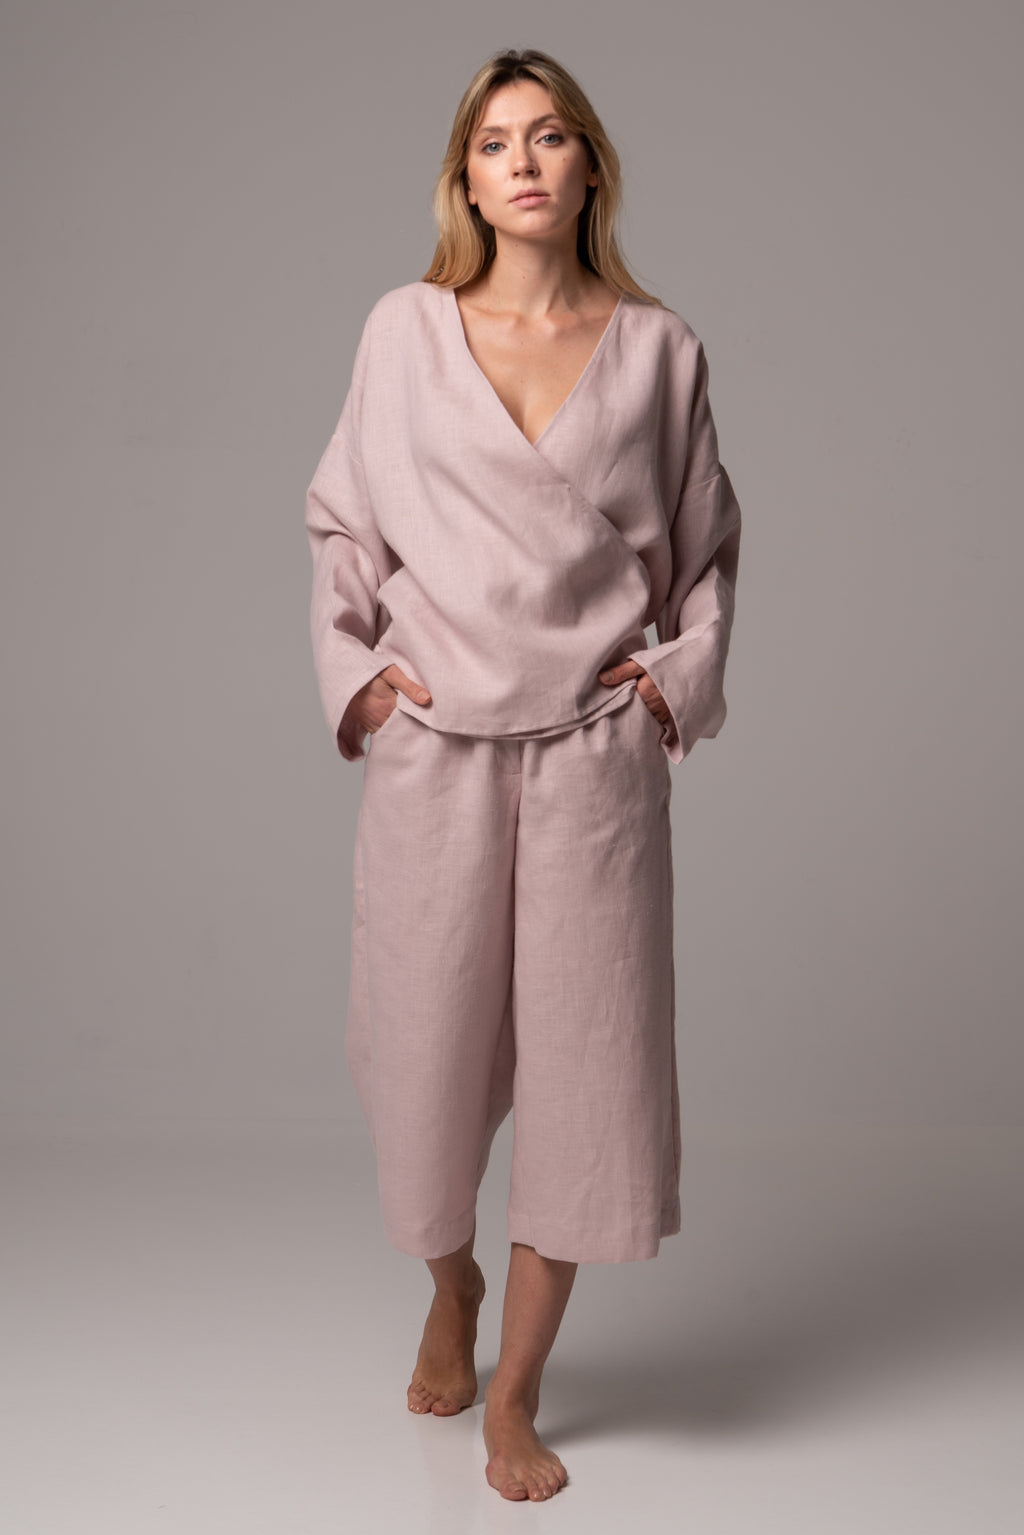 Touch of Sand Long Sleeve Wrap Top in Premium European Linen